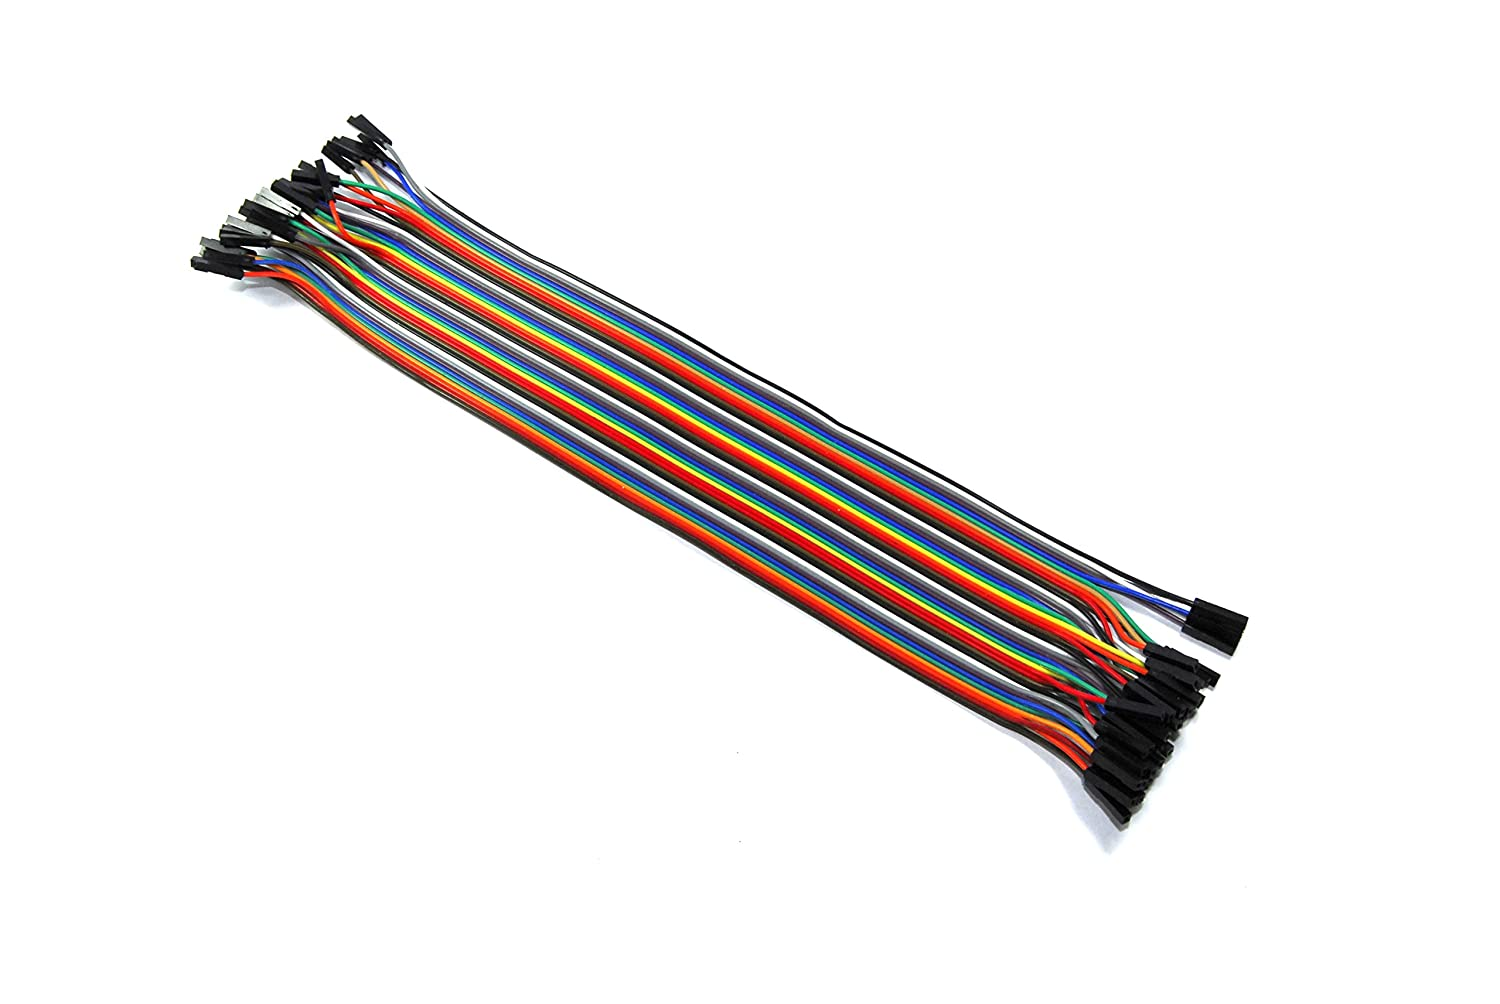 40 Female to Female Jumper Wires Solderless 30cm Ribbon Arduino Unbranded/Generic GBAA100007